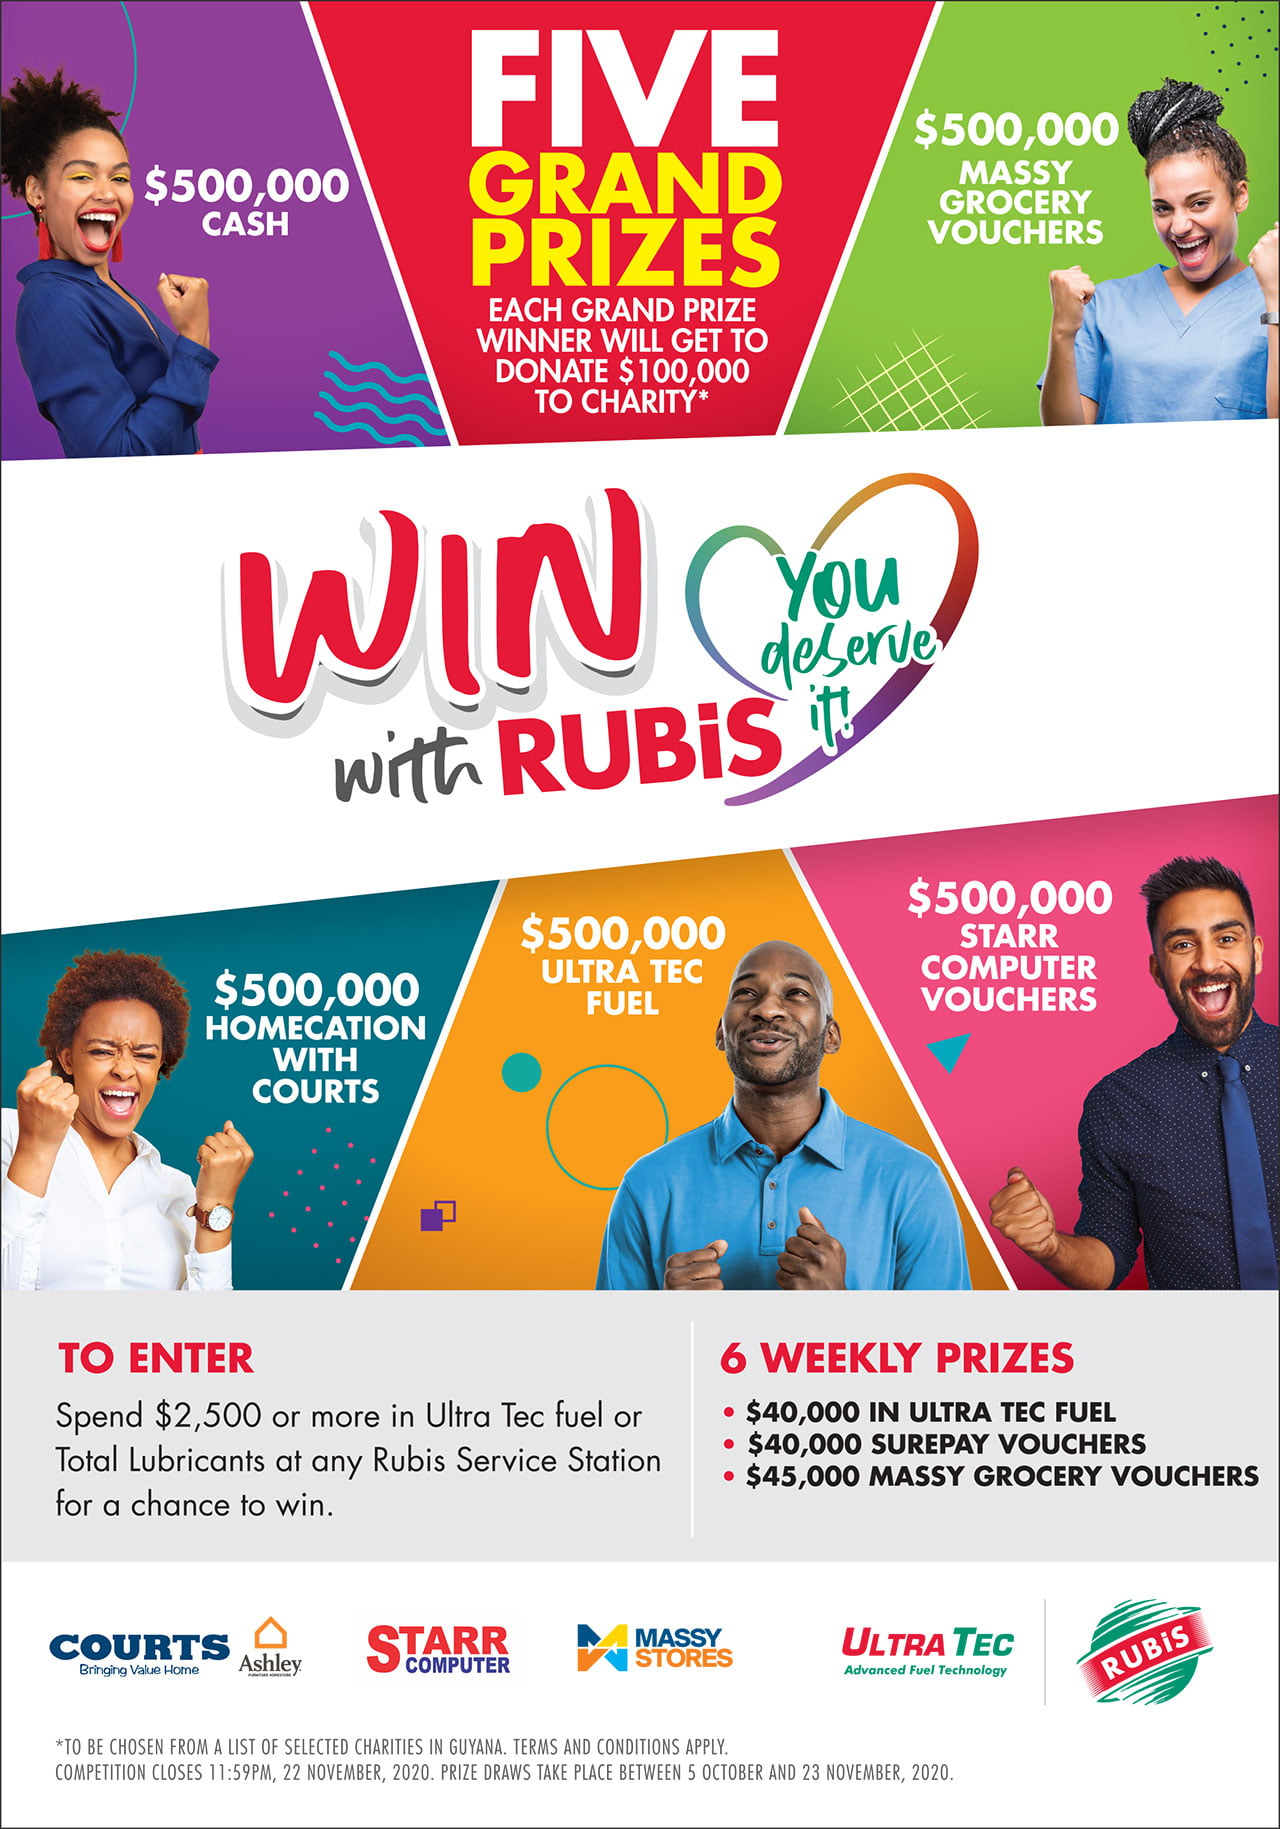 Win With RUBIS ad